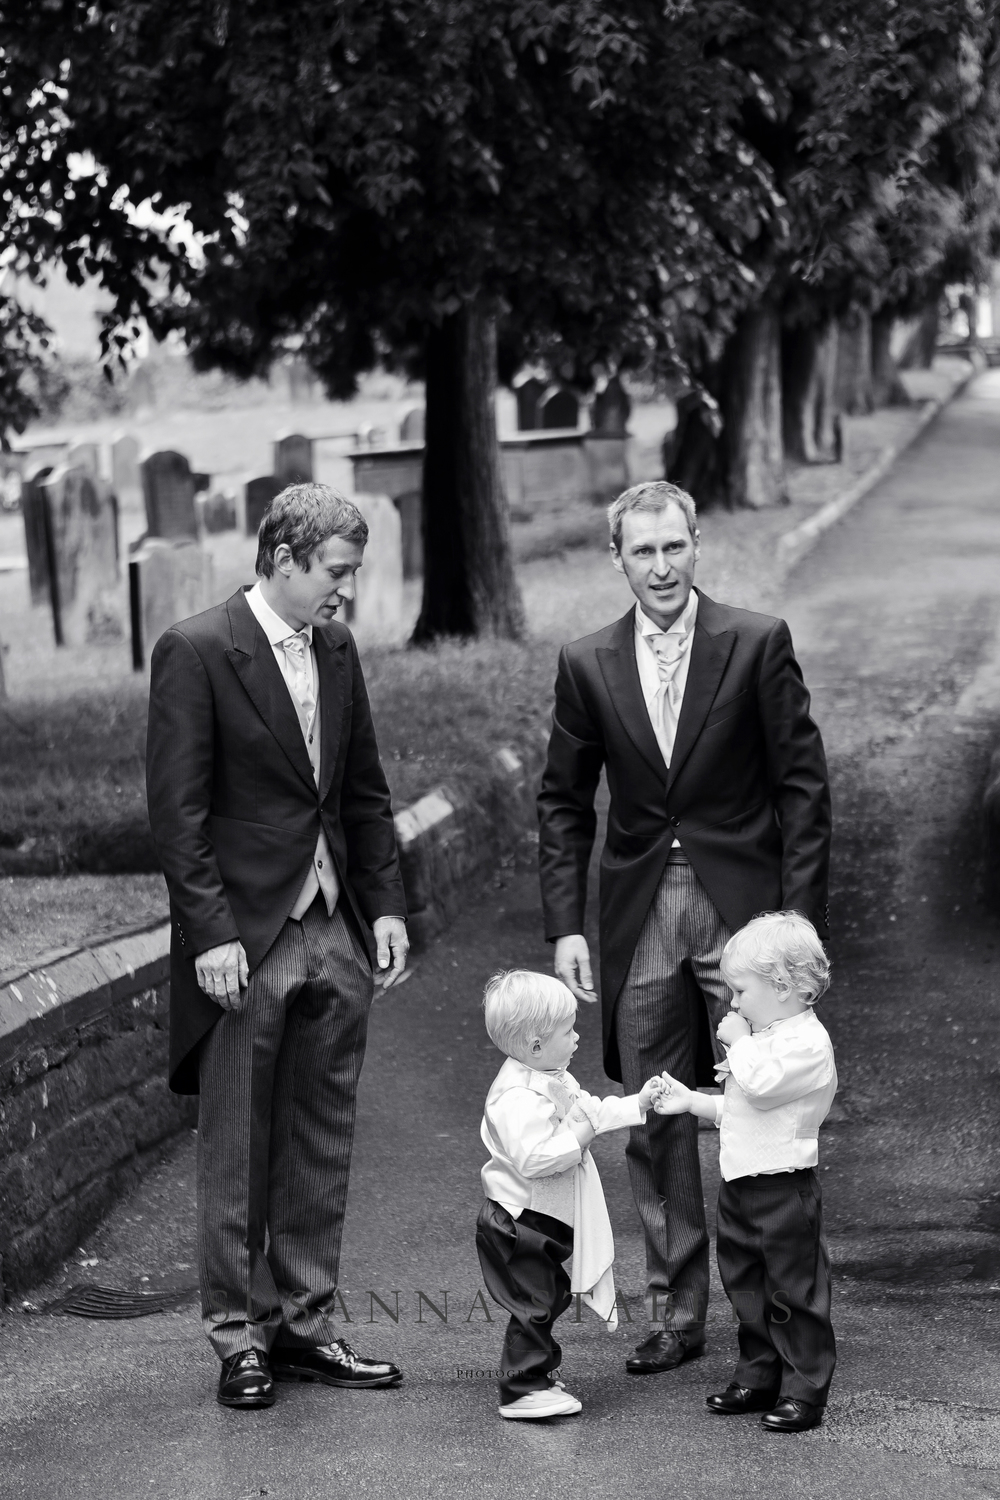 The Brides brothers & two of her nephews waiting for her arrival at the church